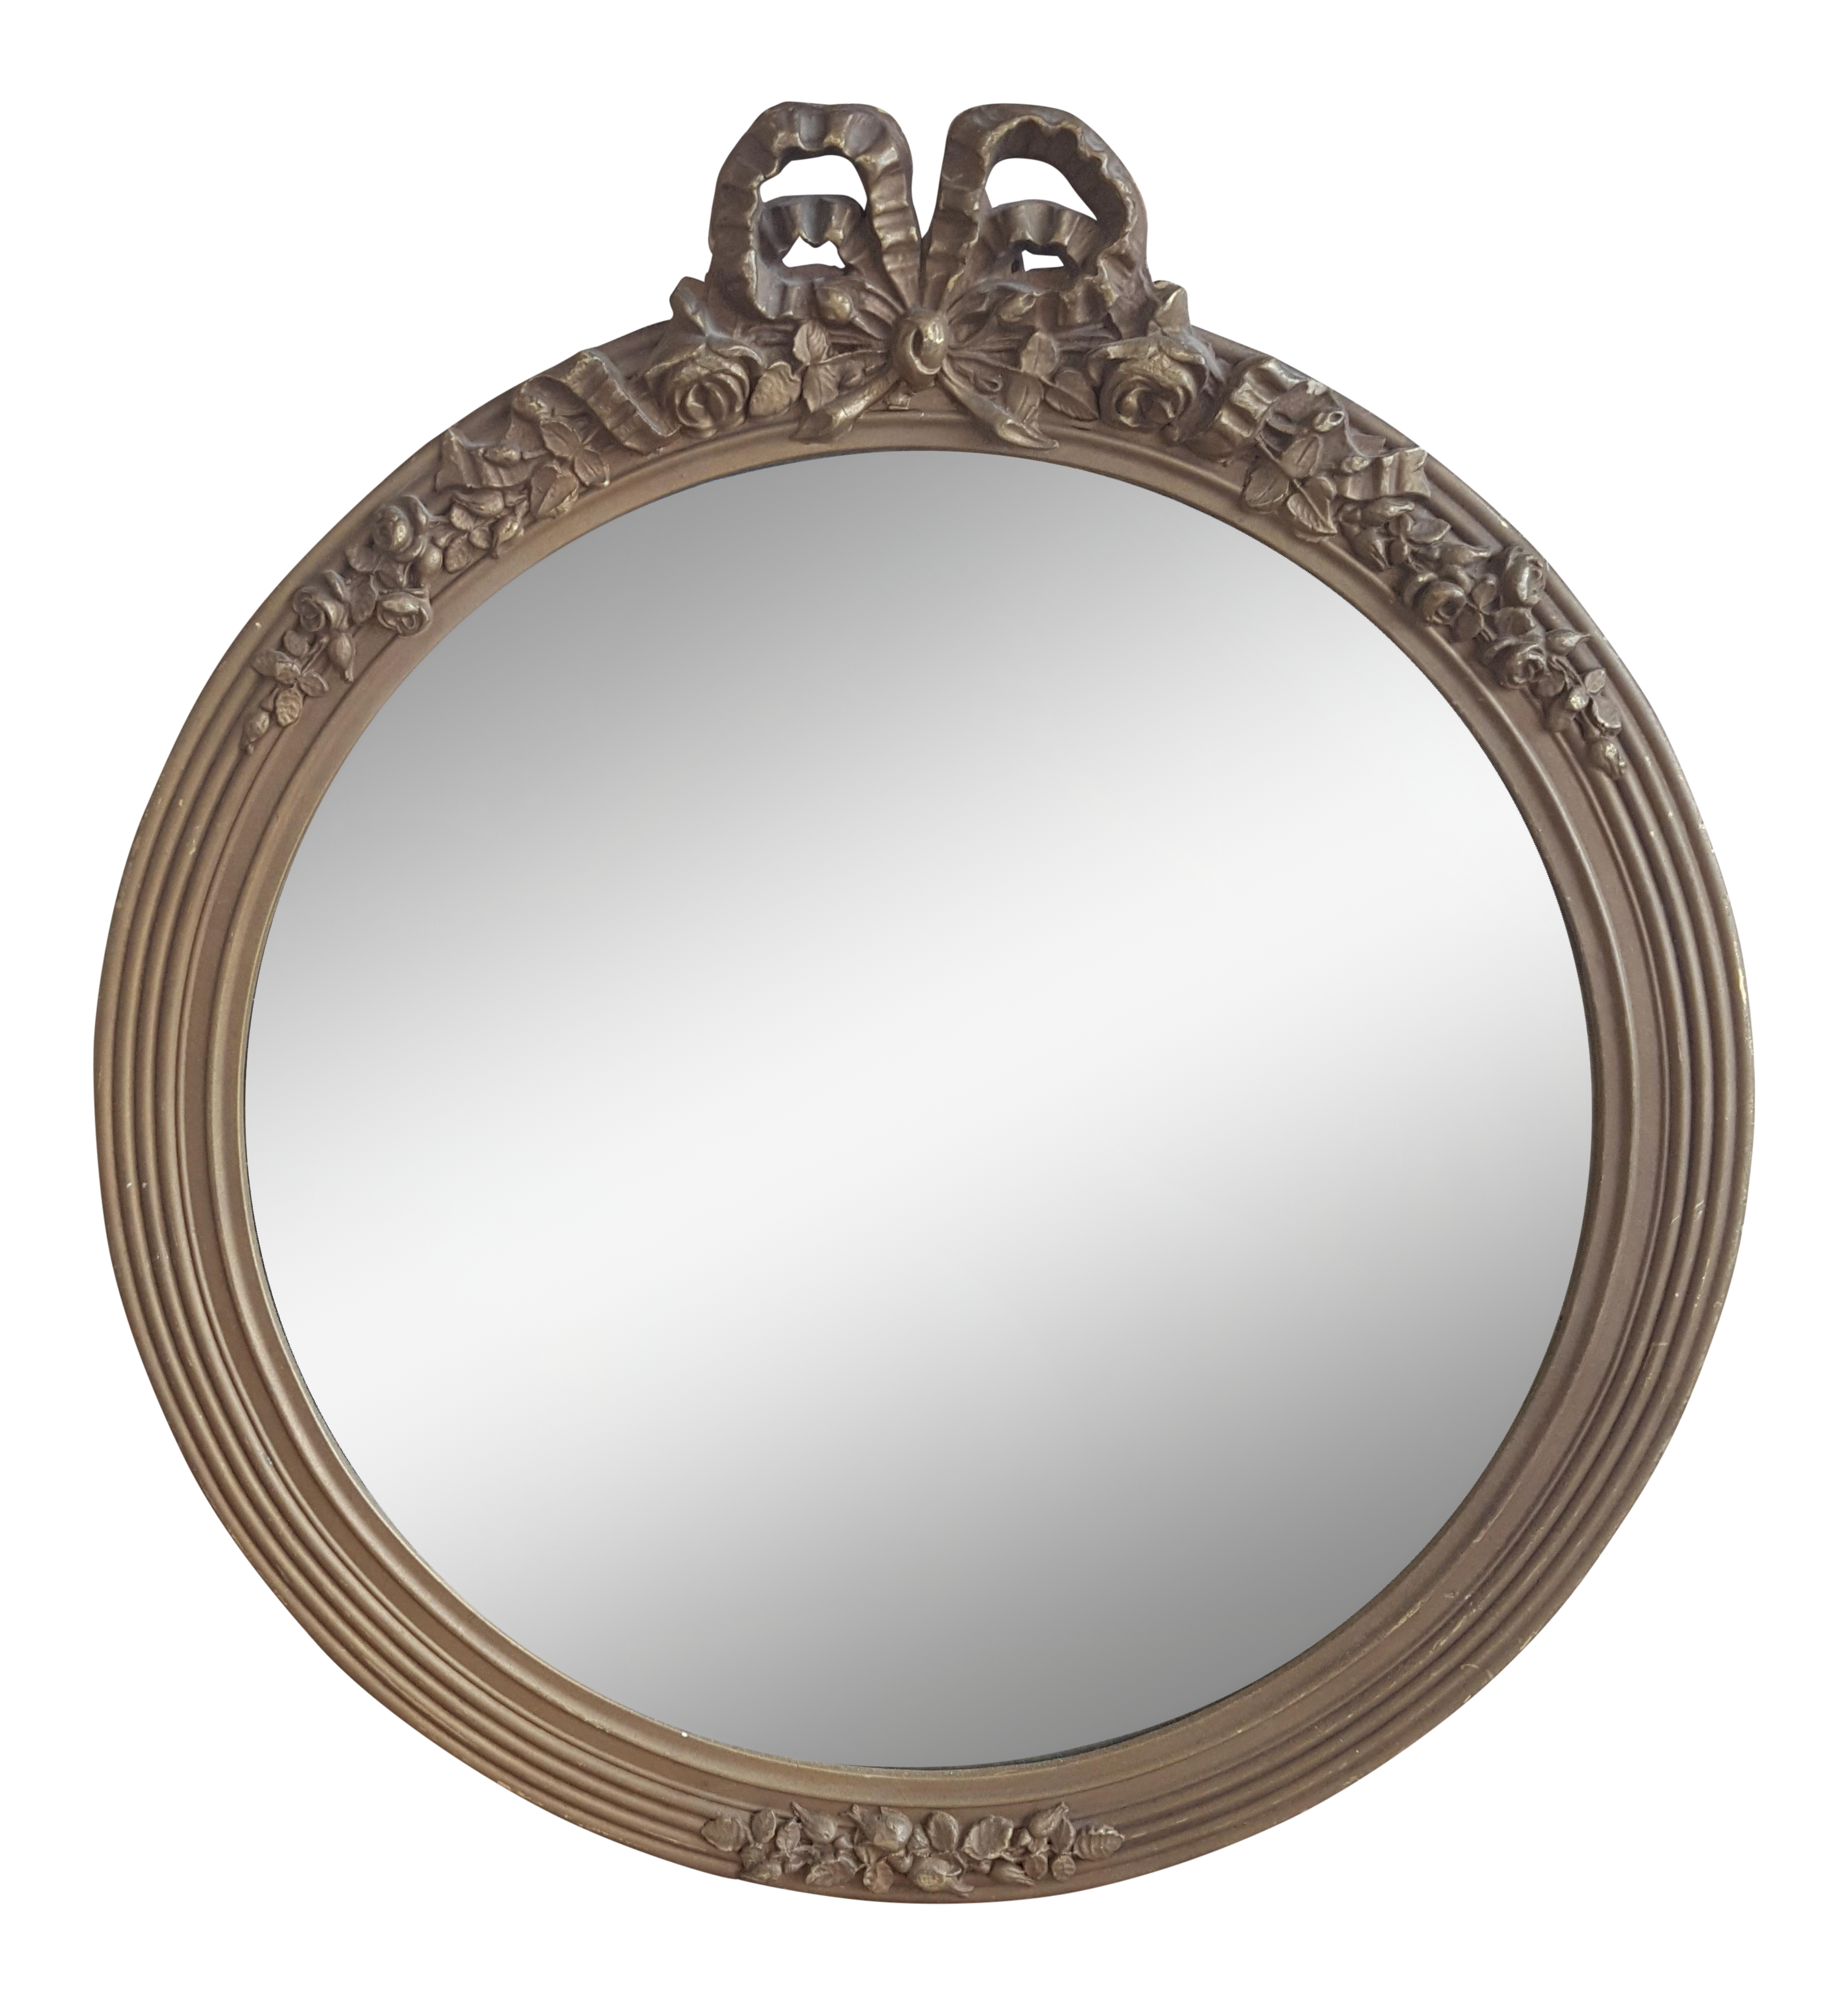 picture royalty free stock Vintage french provincial bow. Mirror transparent circular